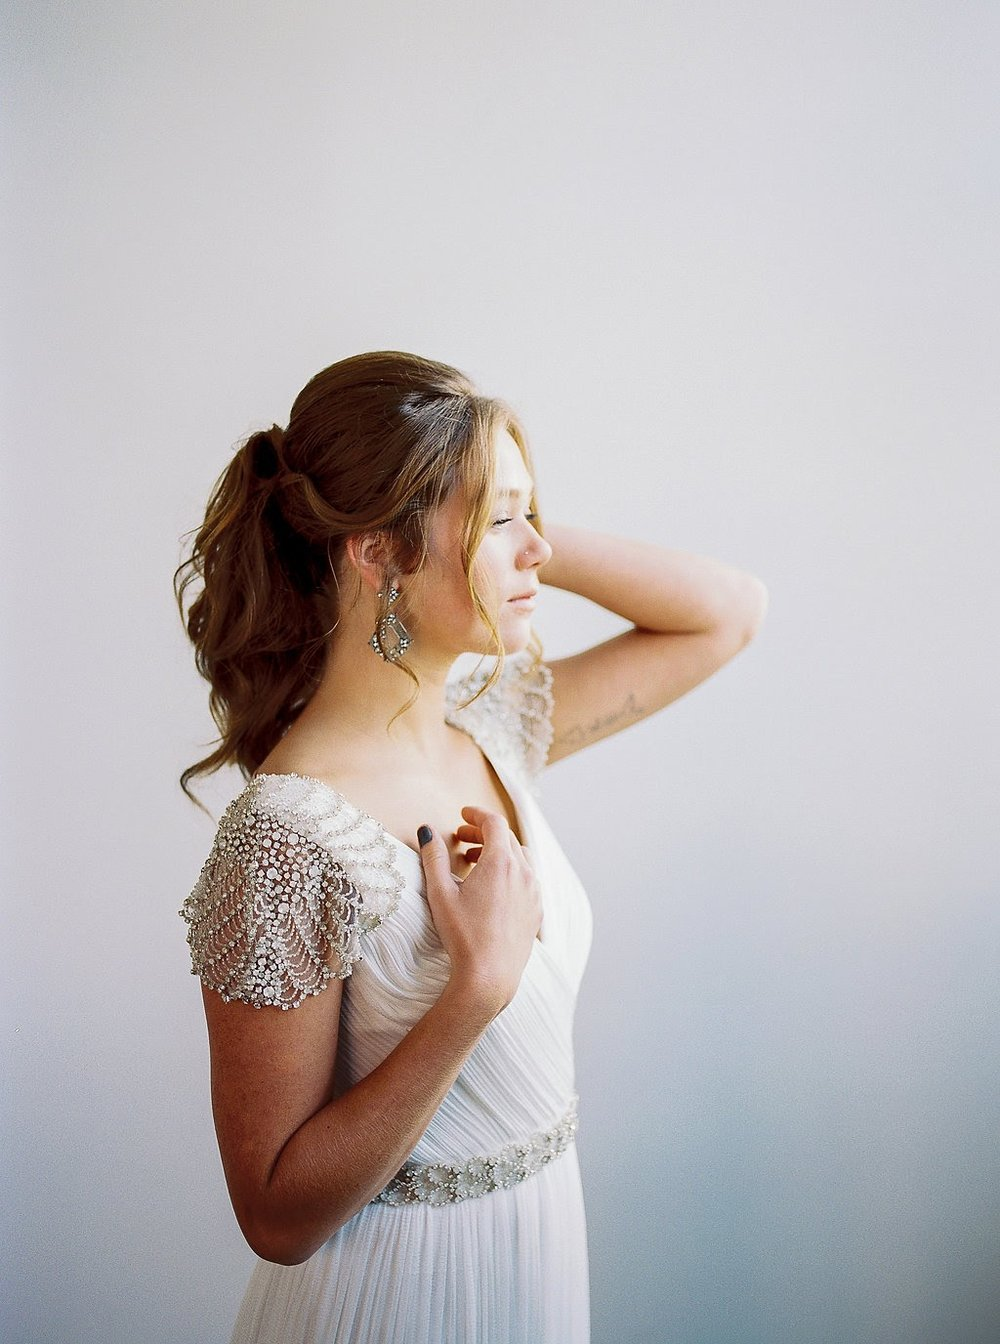 Alexandra-Elise-Photography-Ali-Reed-Film-Wedding-Photographer-173.jpg